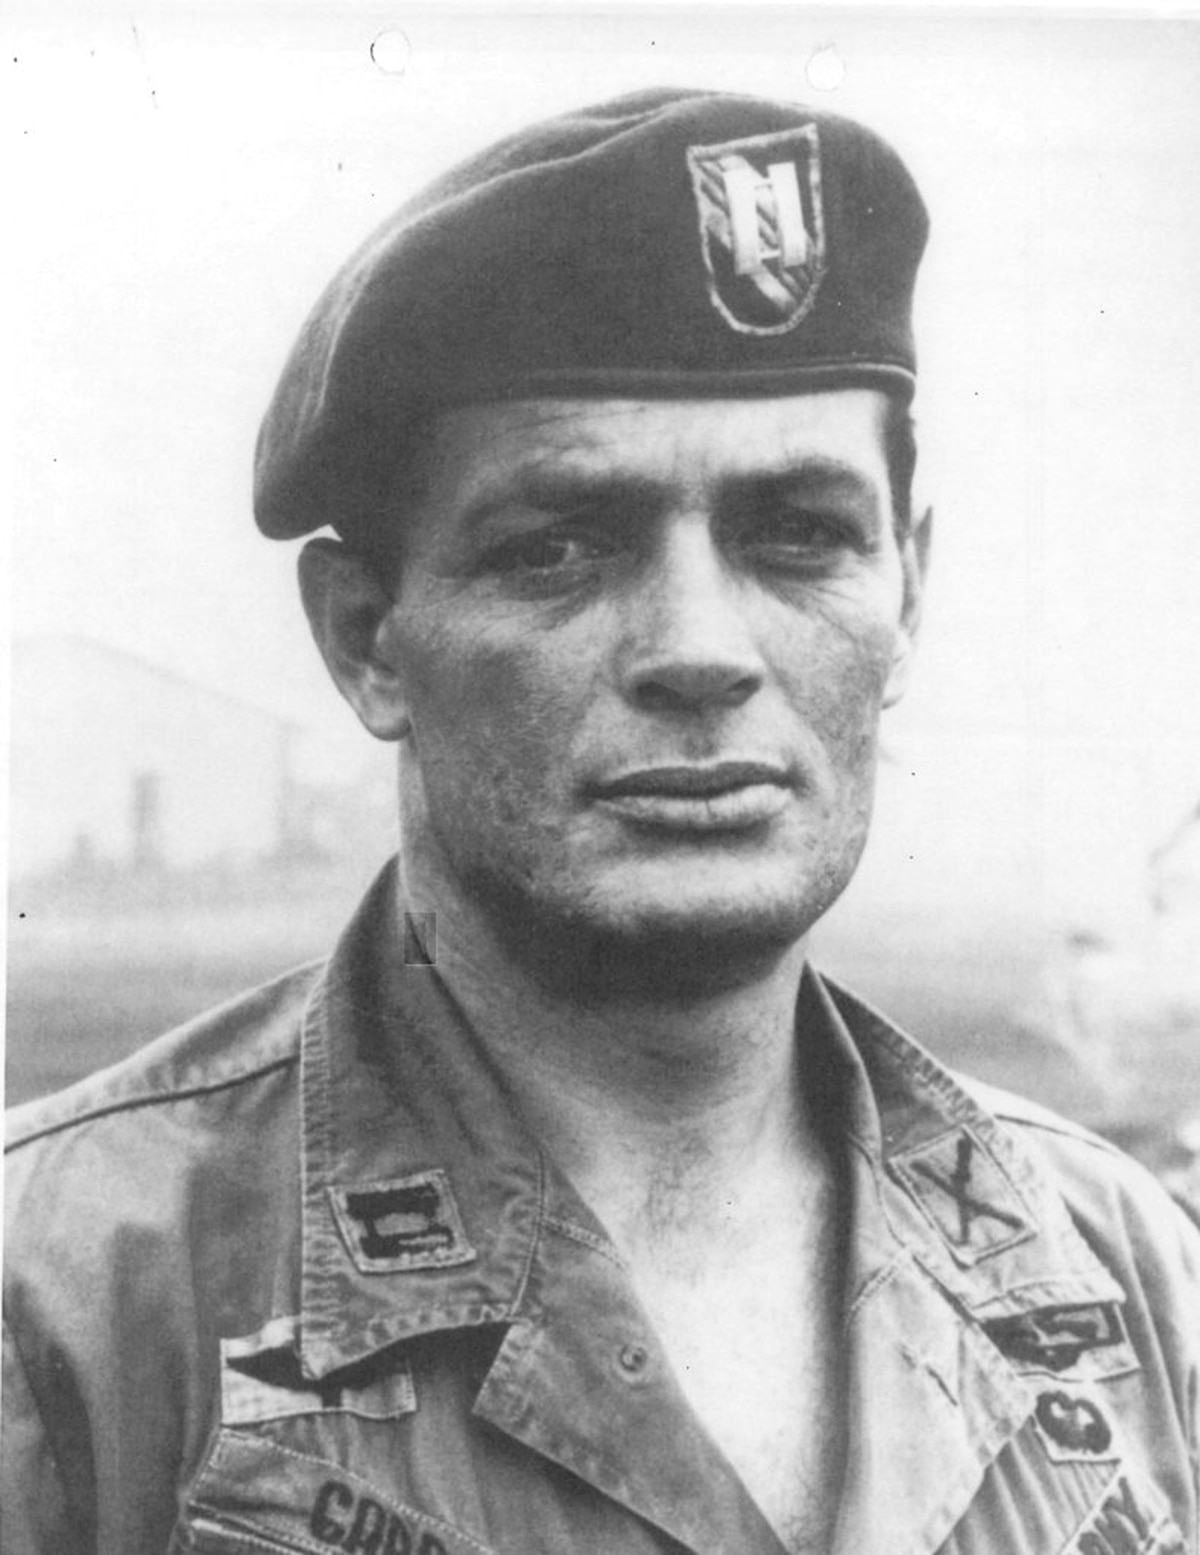 Remains Of Green Beret Missing Since 1971 To Be Buried In